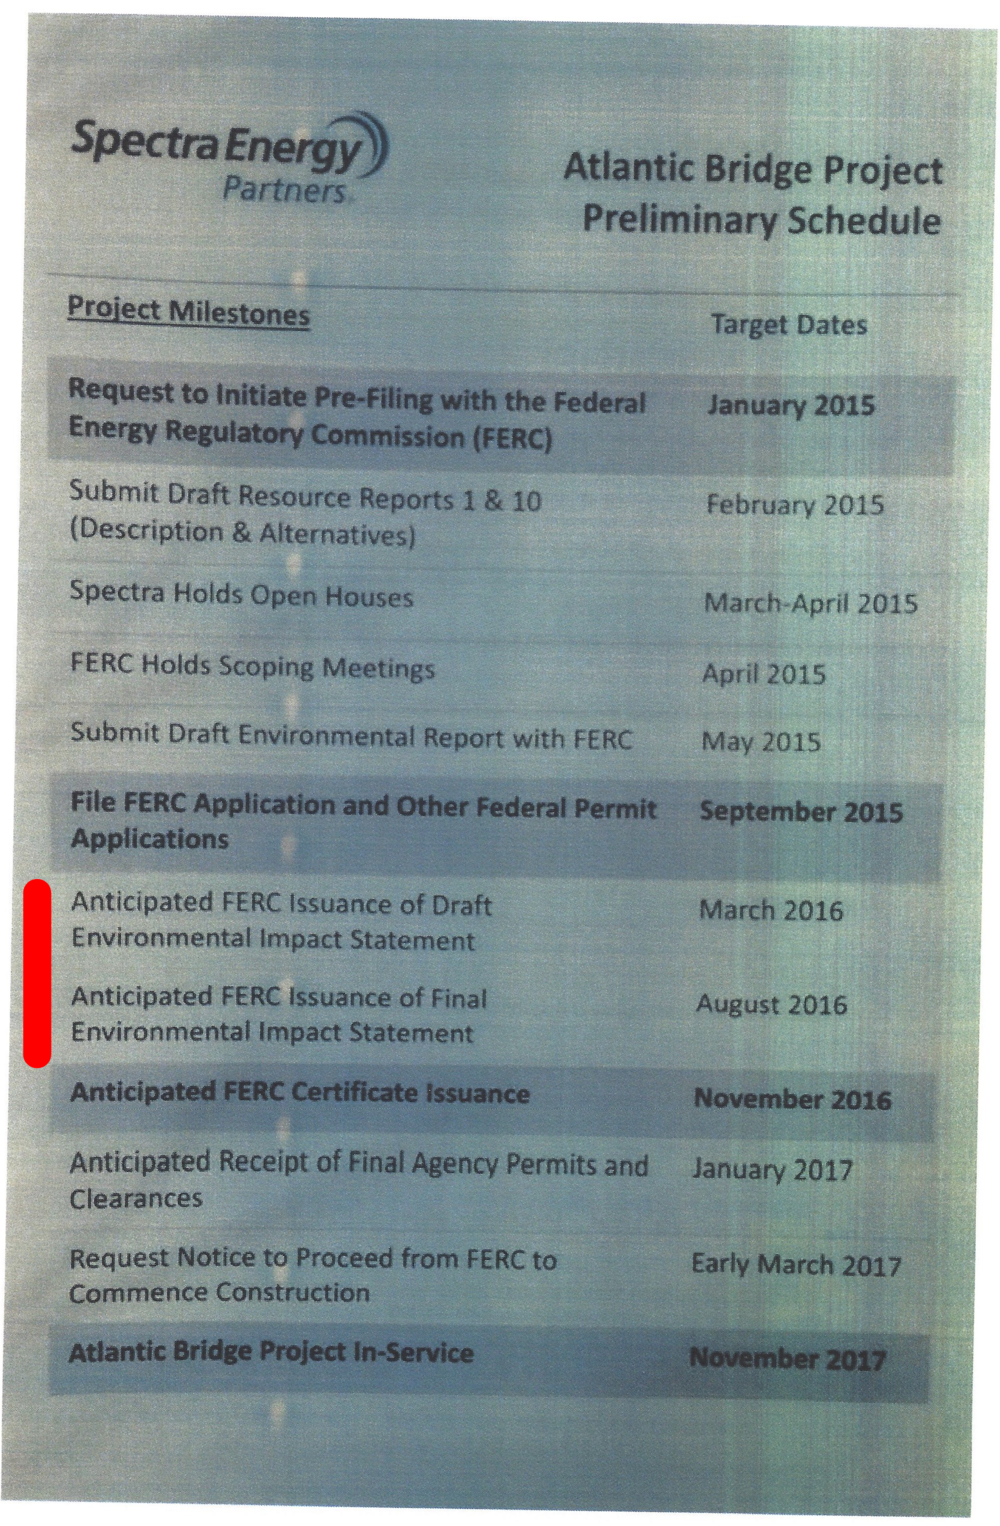 Spectra's 2015 flyer stating that an Environmental Impact Statement (EIS) would be issued in March 2016.